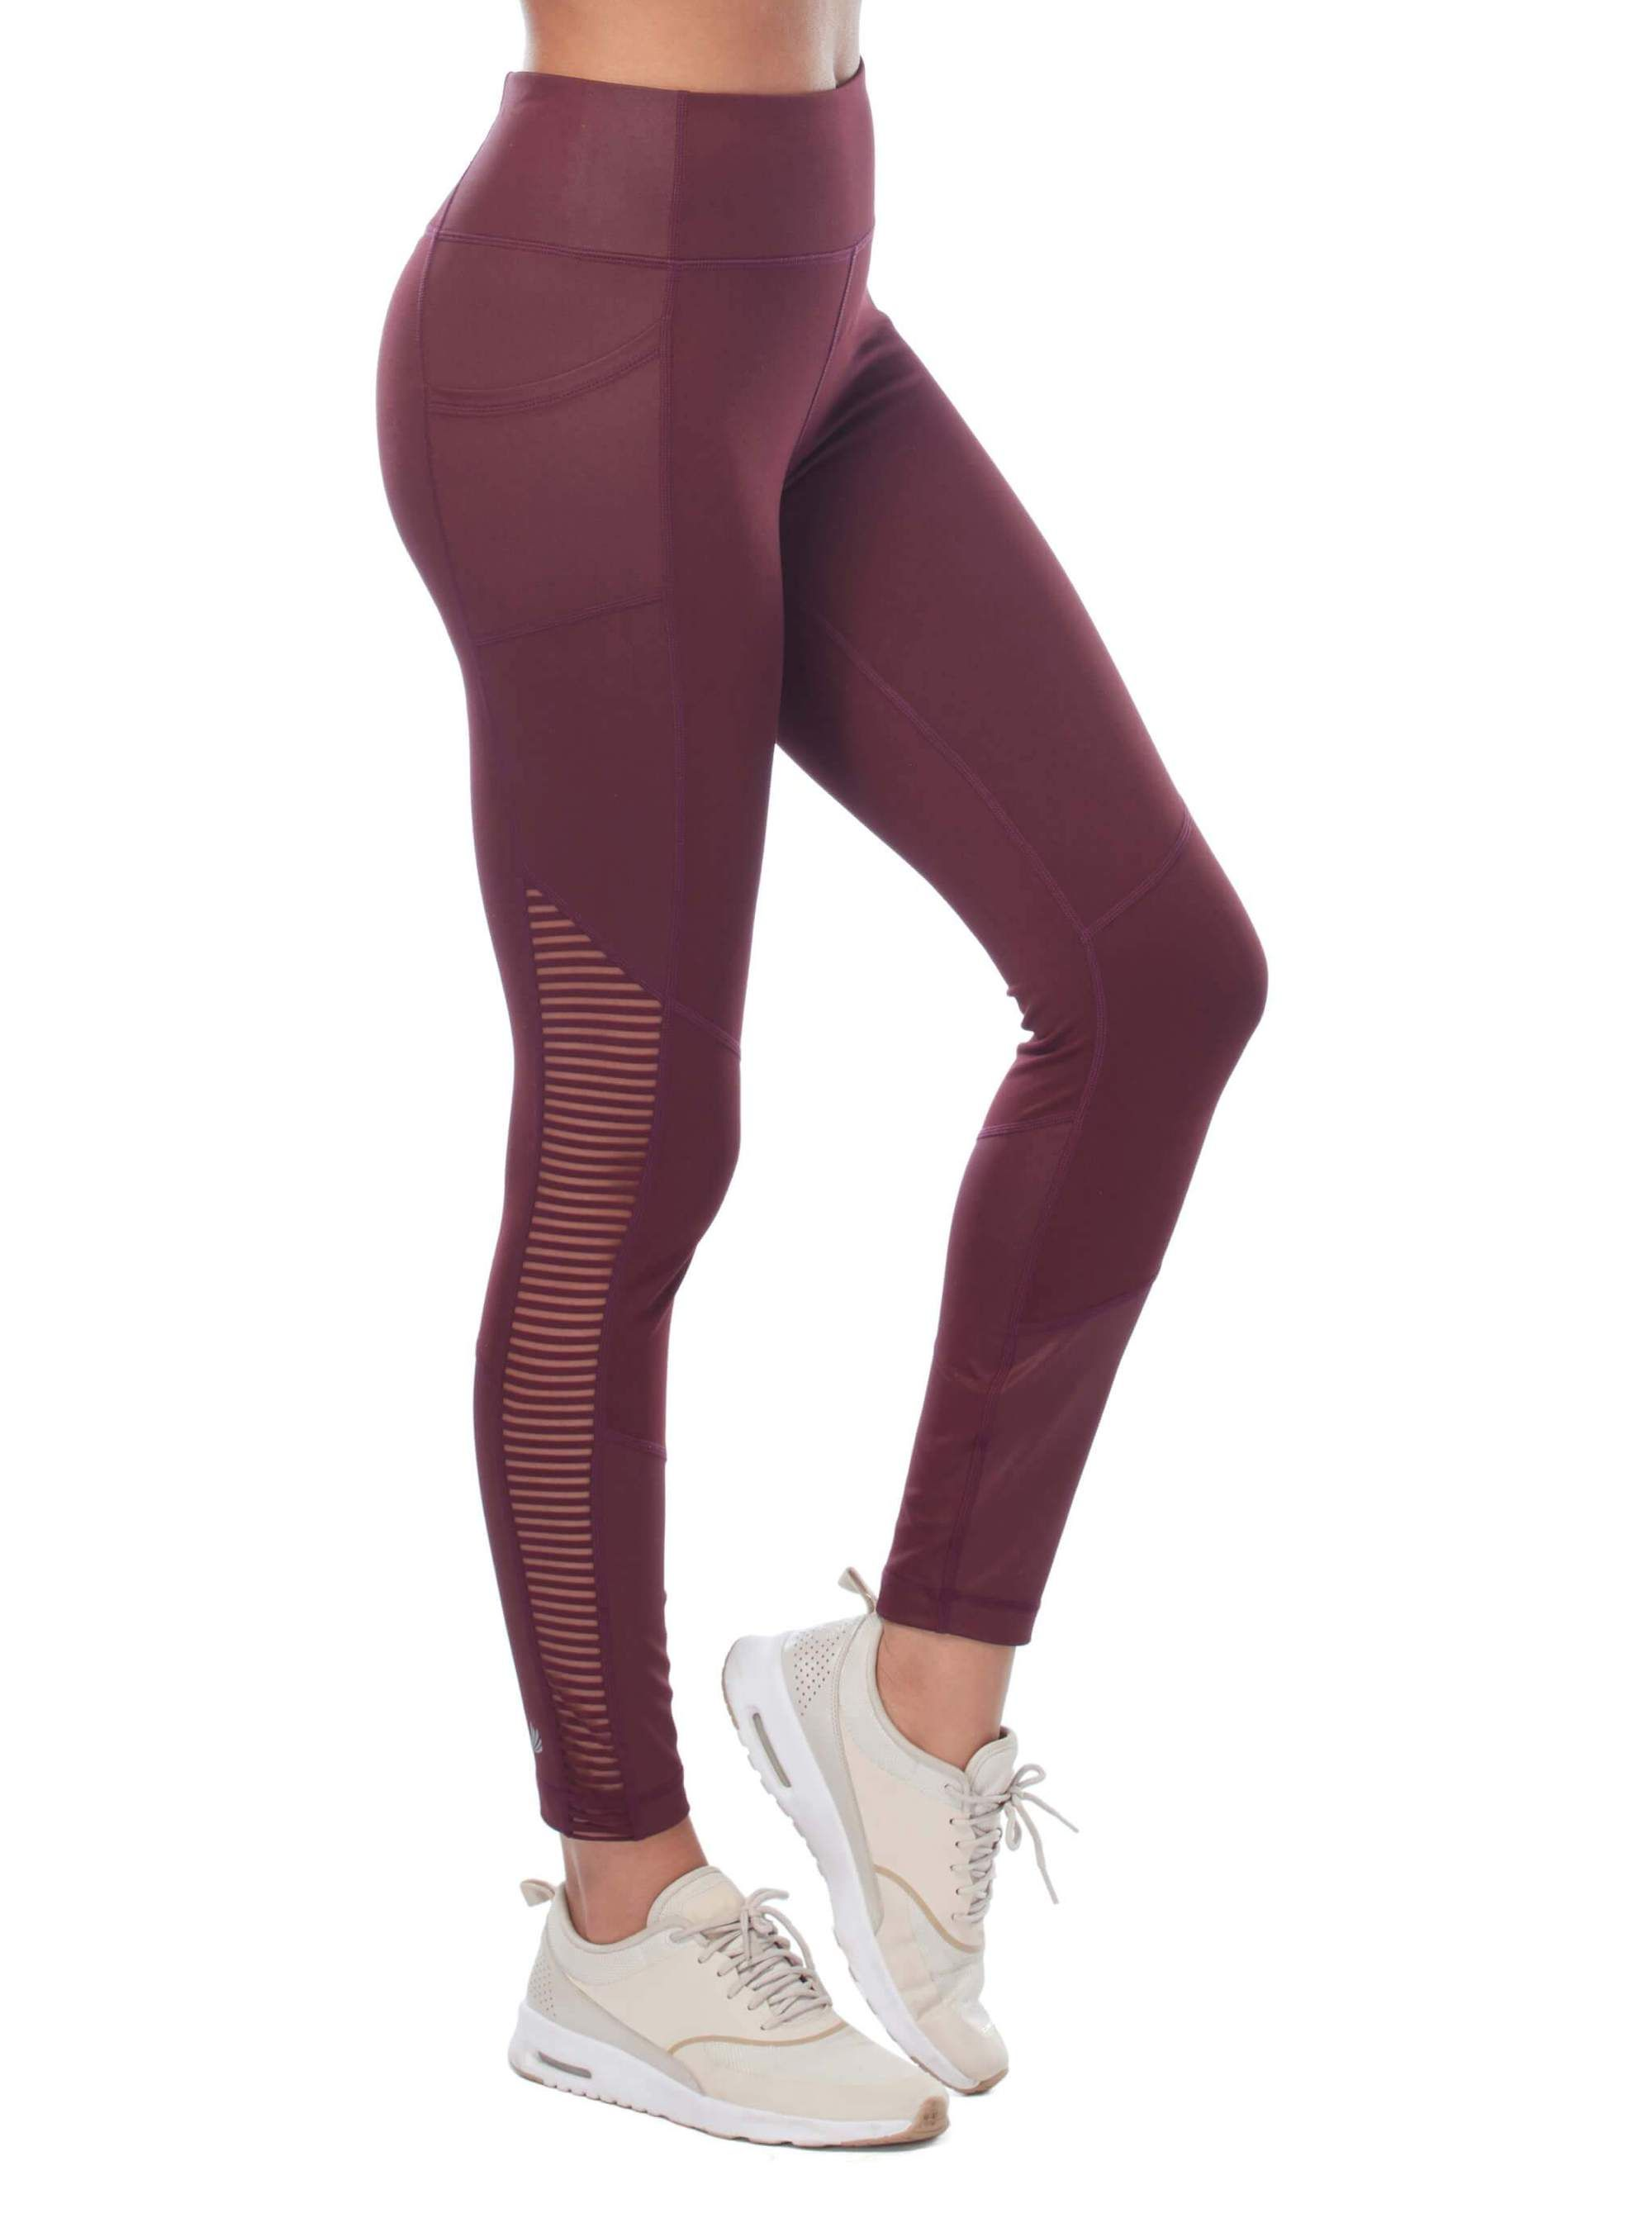 fdca2e26e 18 Best Mesh Leggings to Workout In 2019 - Stylish Mesh Tights